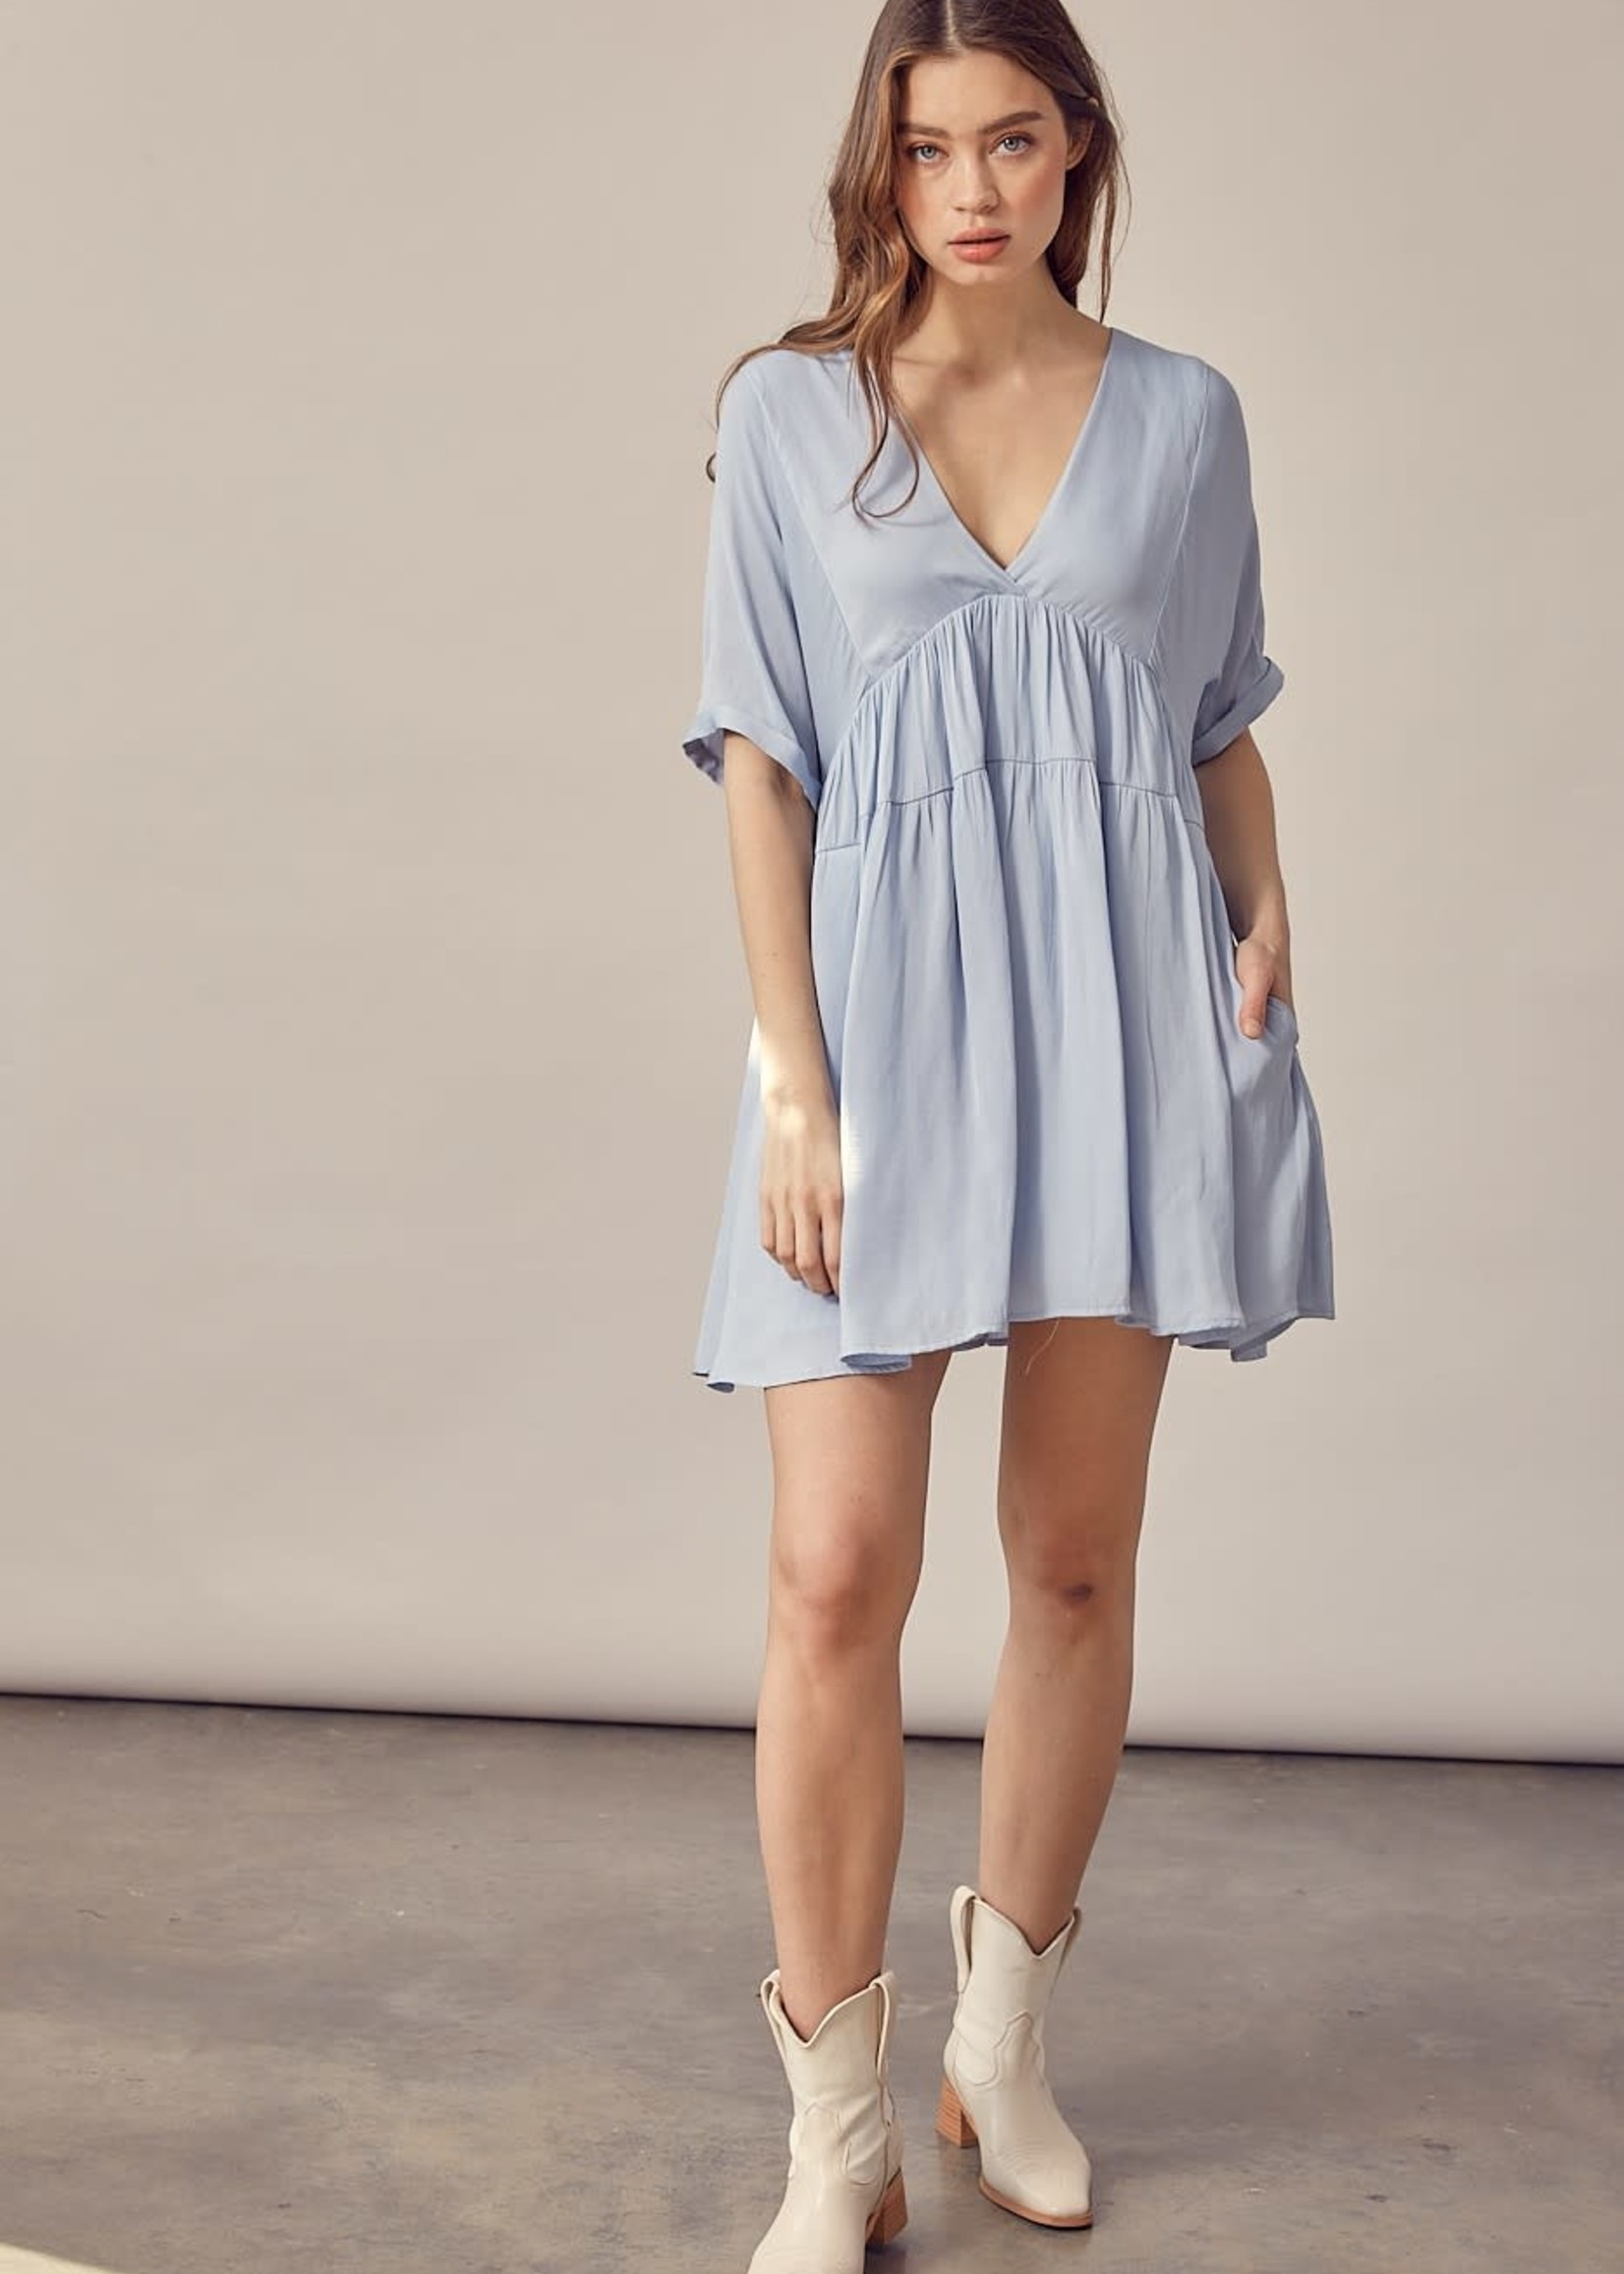 V Neck Tiered Mini Dress - Misty Blue